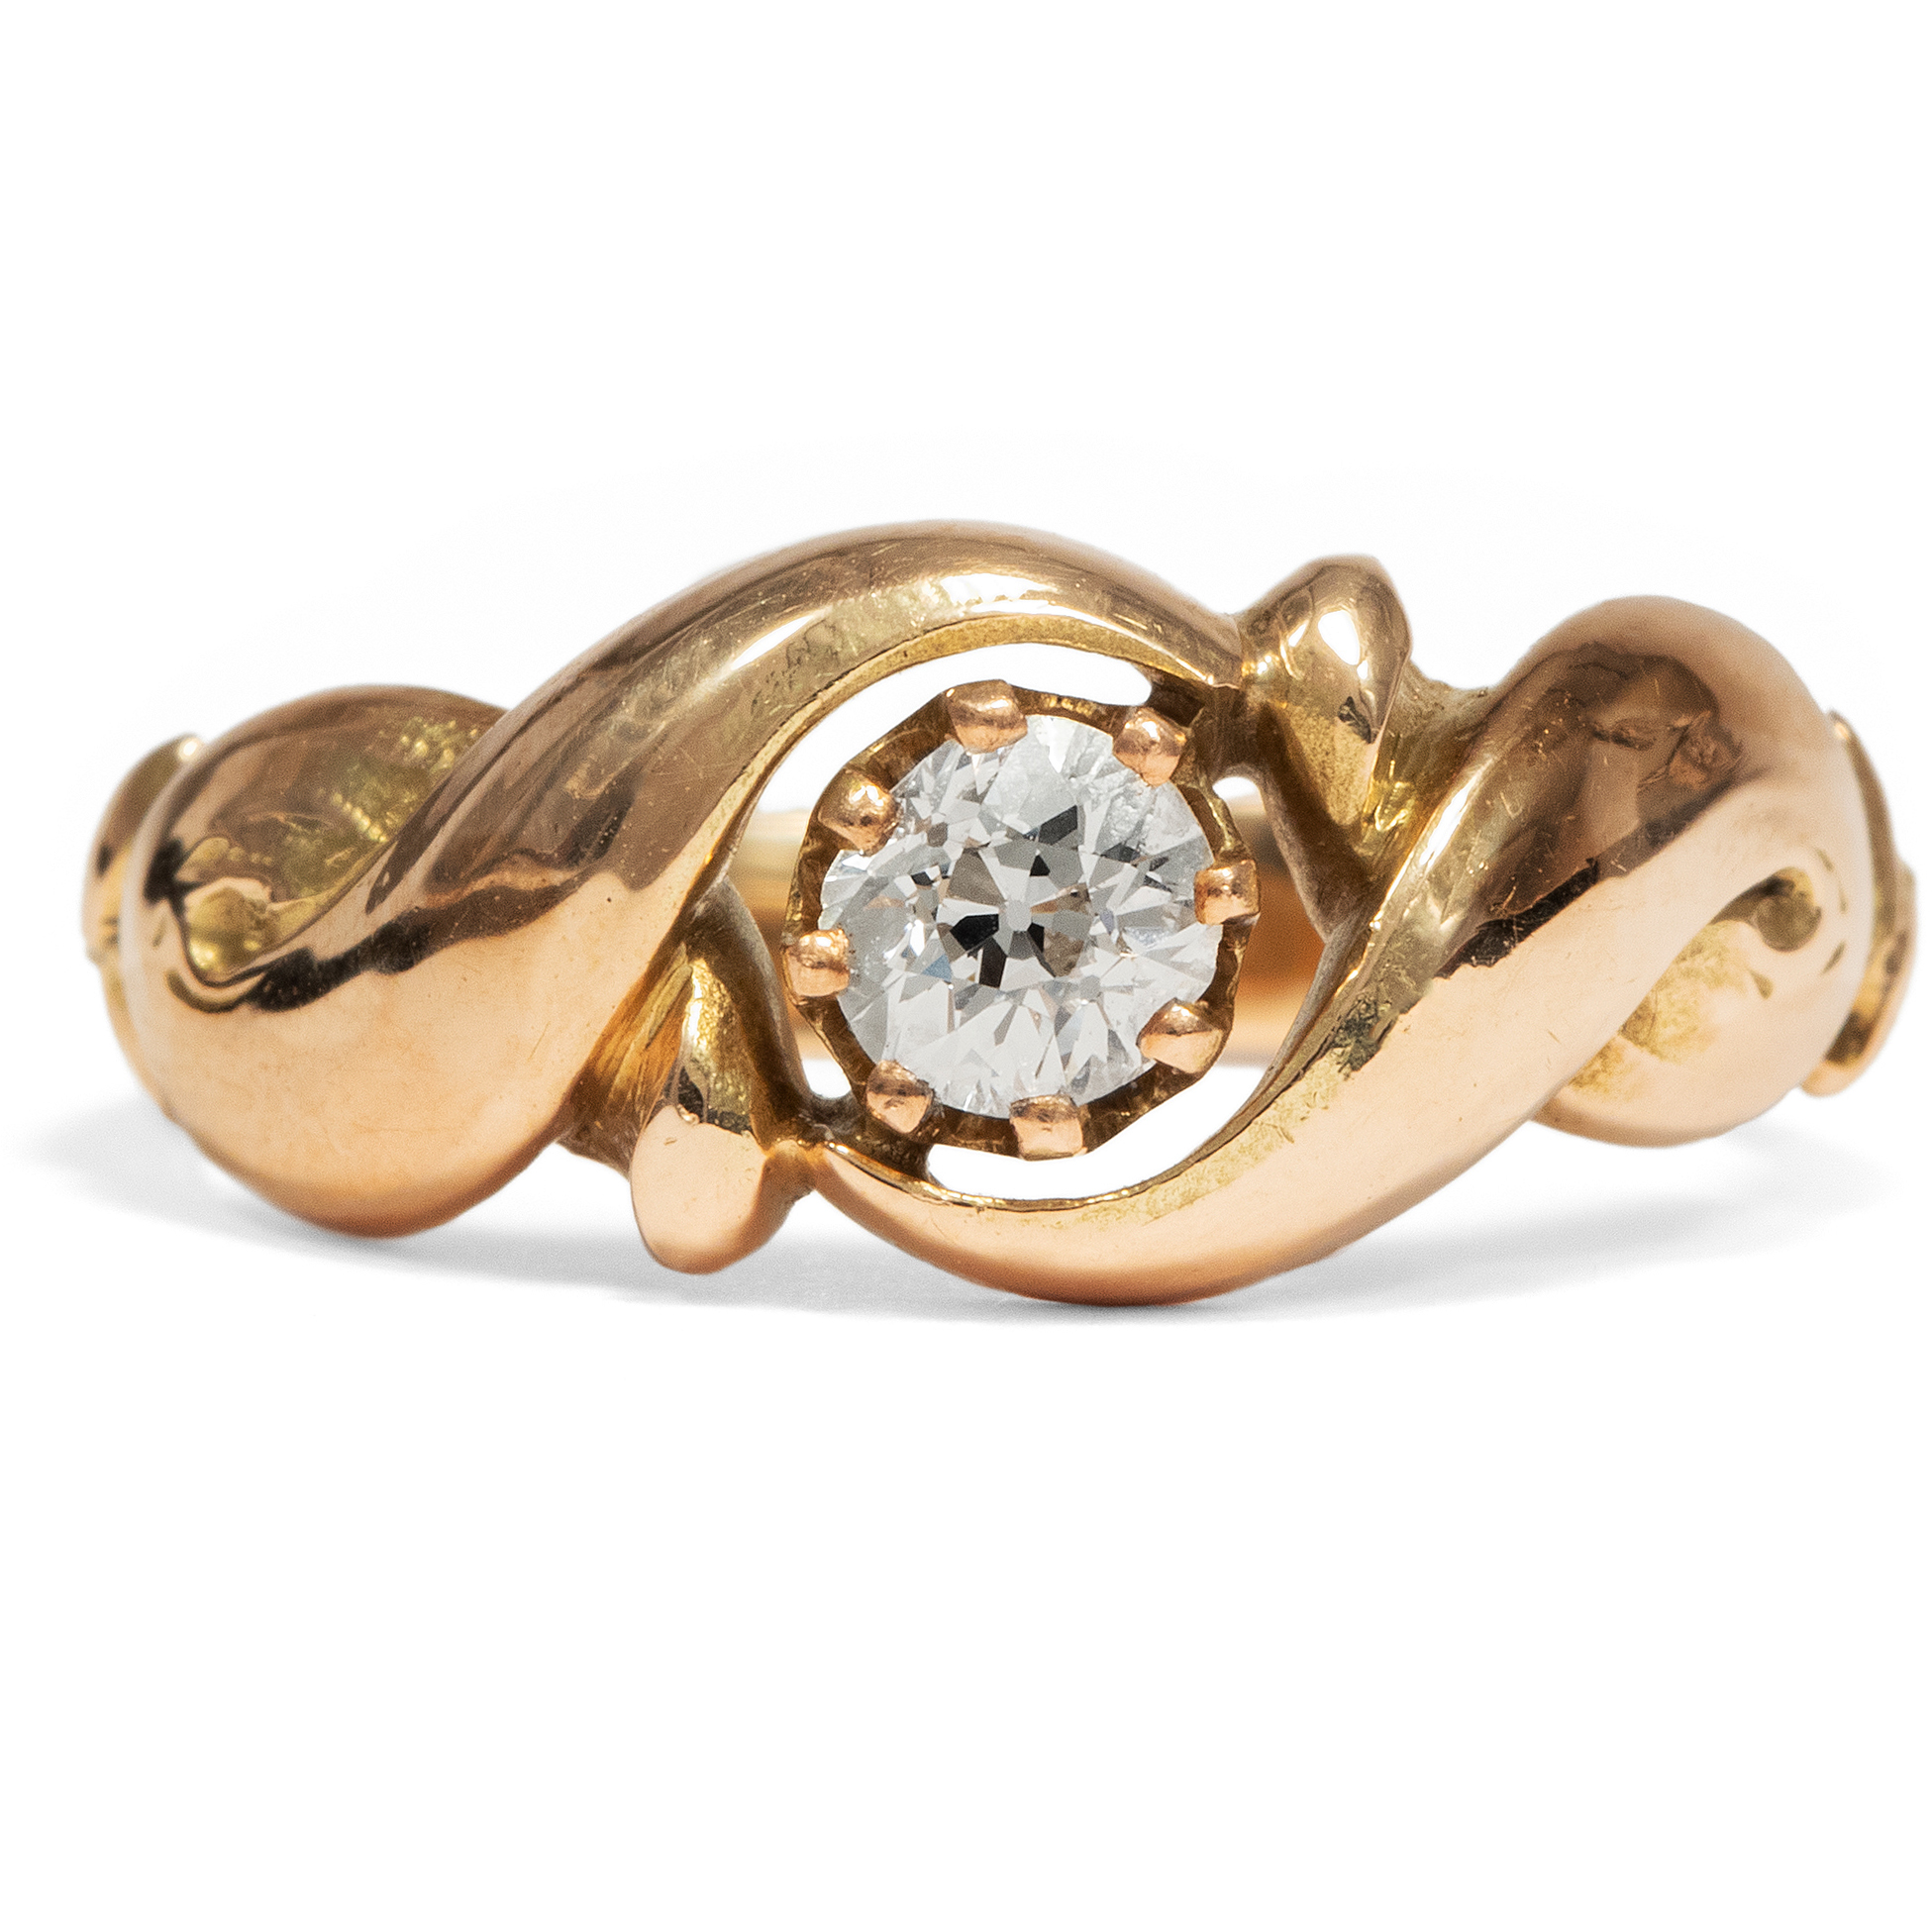 Old steel nail ring with gold capped head and solitaire diamond